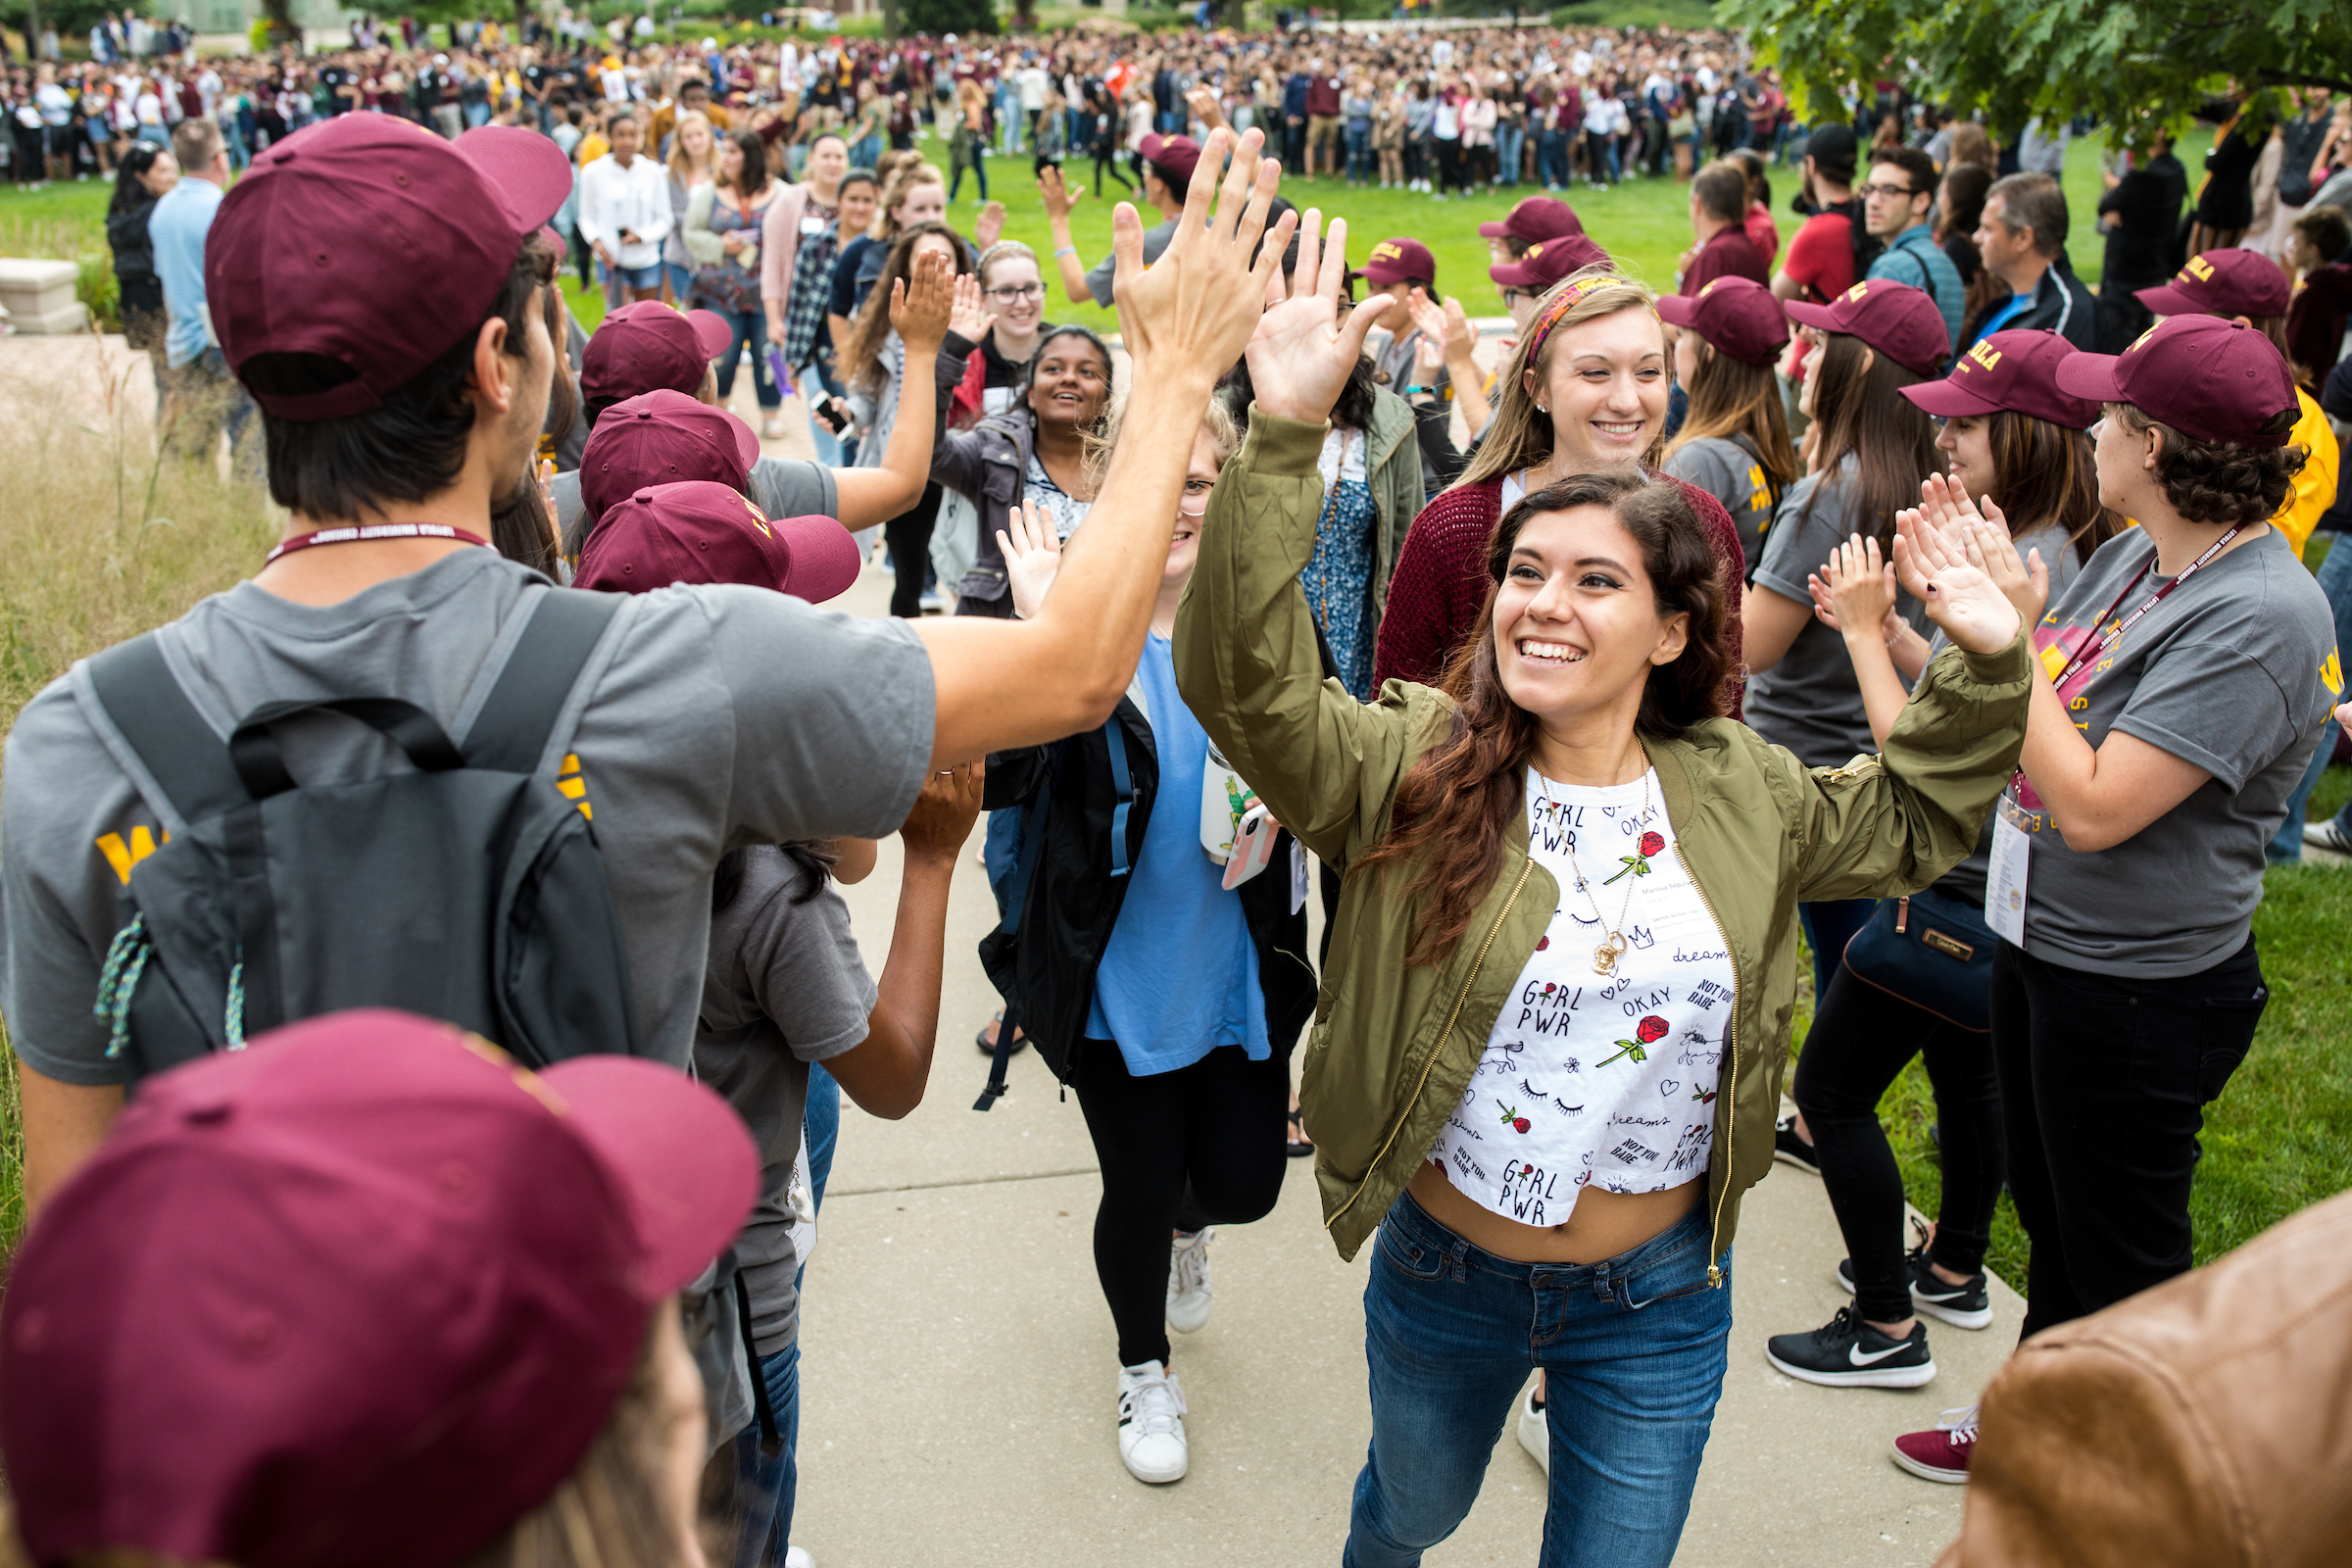 Incoming students participate in the New Student Convocation, an annual tradition when all freshmen and transfer students are officially inducted into their graduating class at Loyola University Chicago (photo by Lukas Keapproth for Loyola University Chicago)